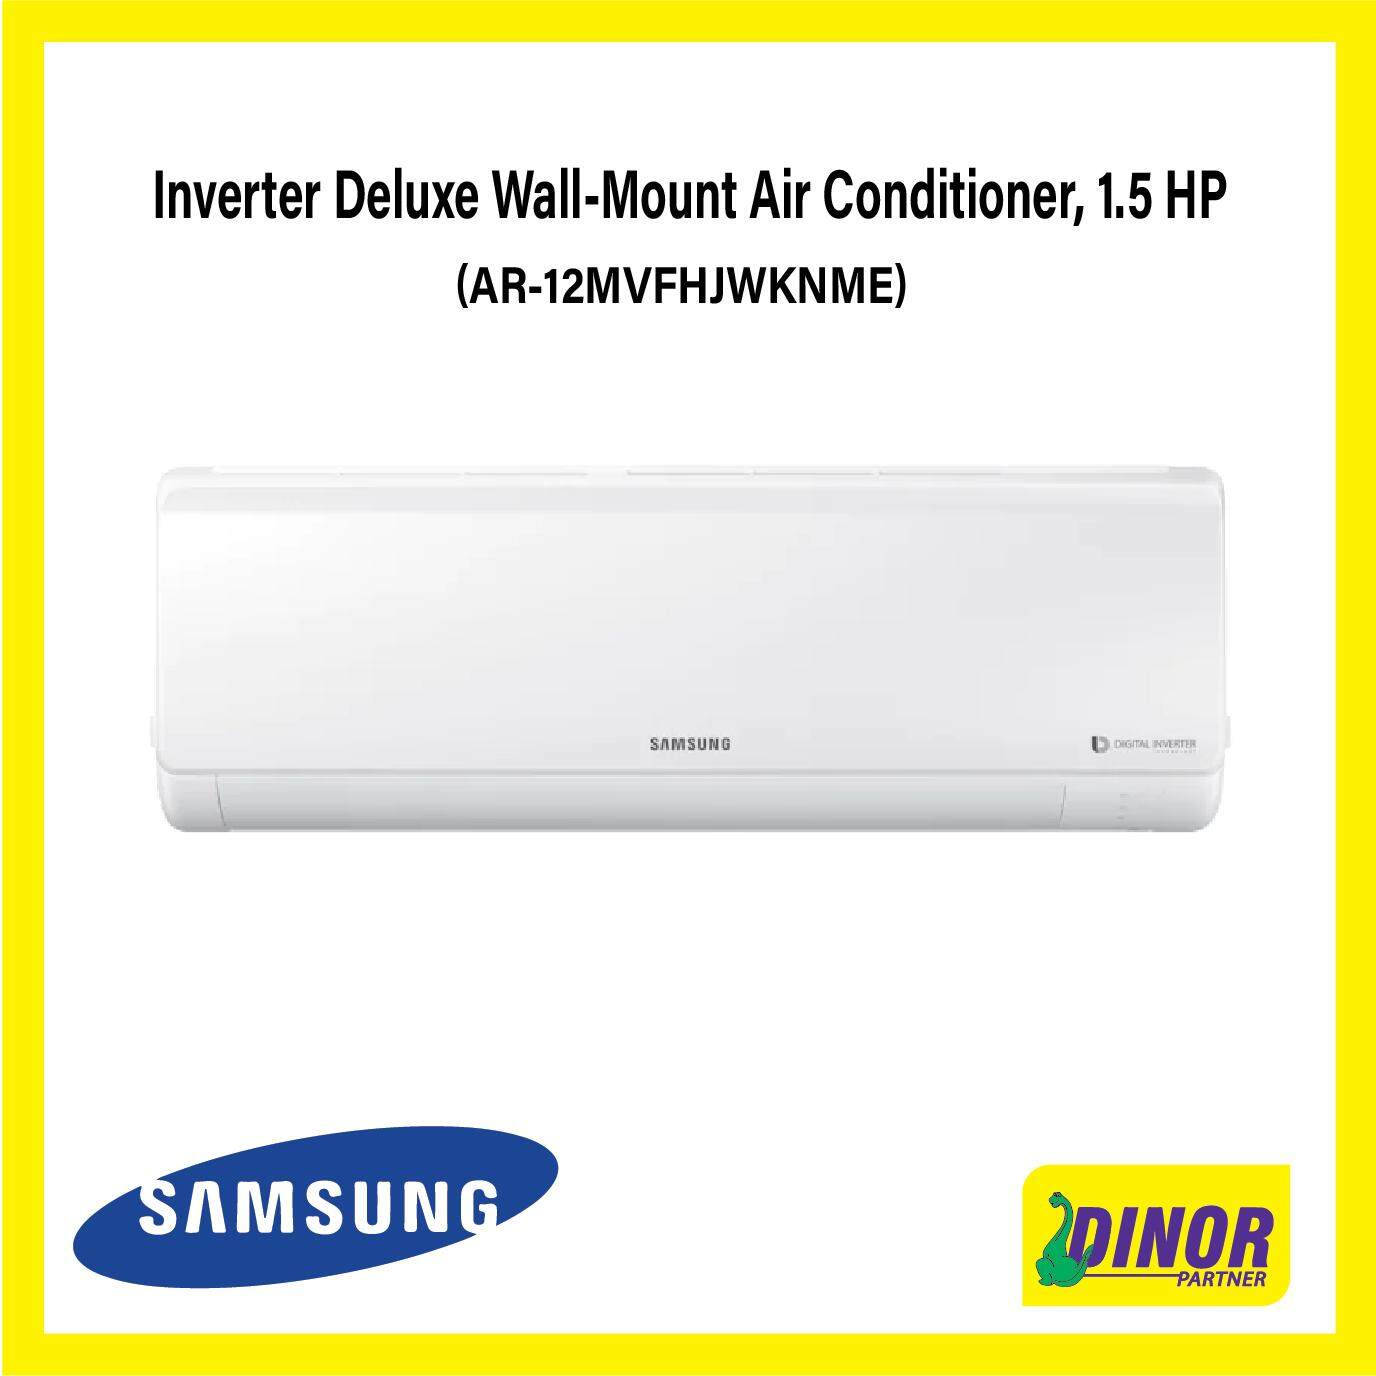 Samsung Inverter Deluxe Wall-Mount Air Conditioner with 8-Pole Inverter, 1.5 HP (AR12MVFHJWKNME)